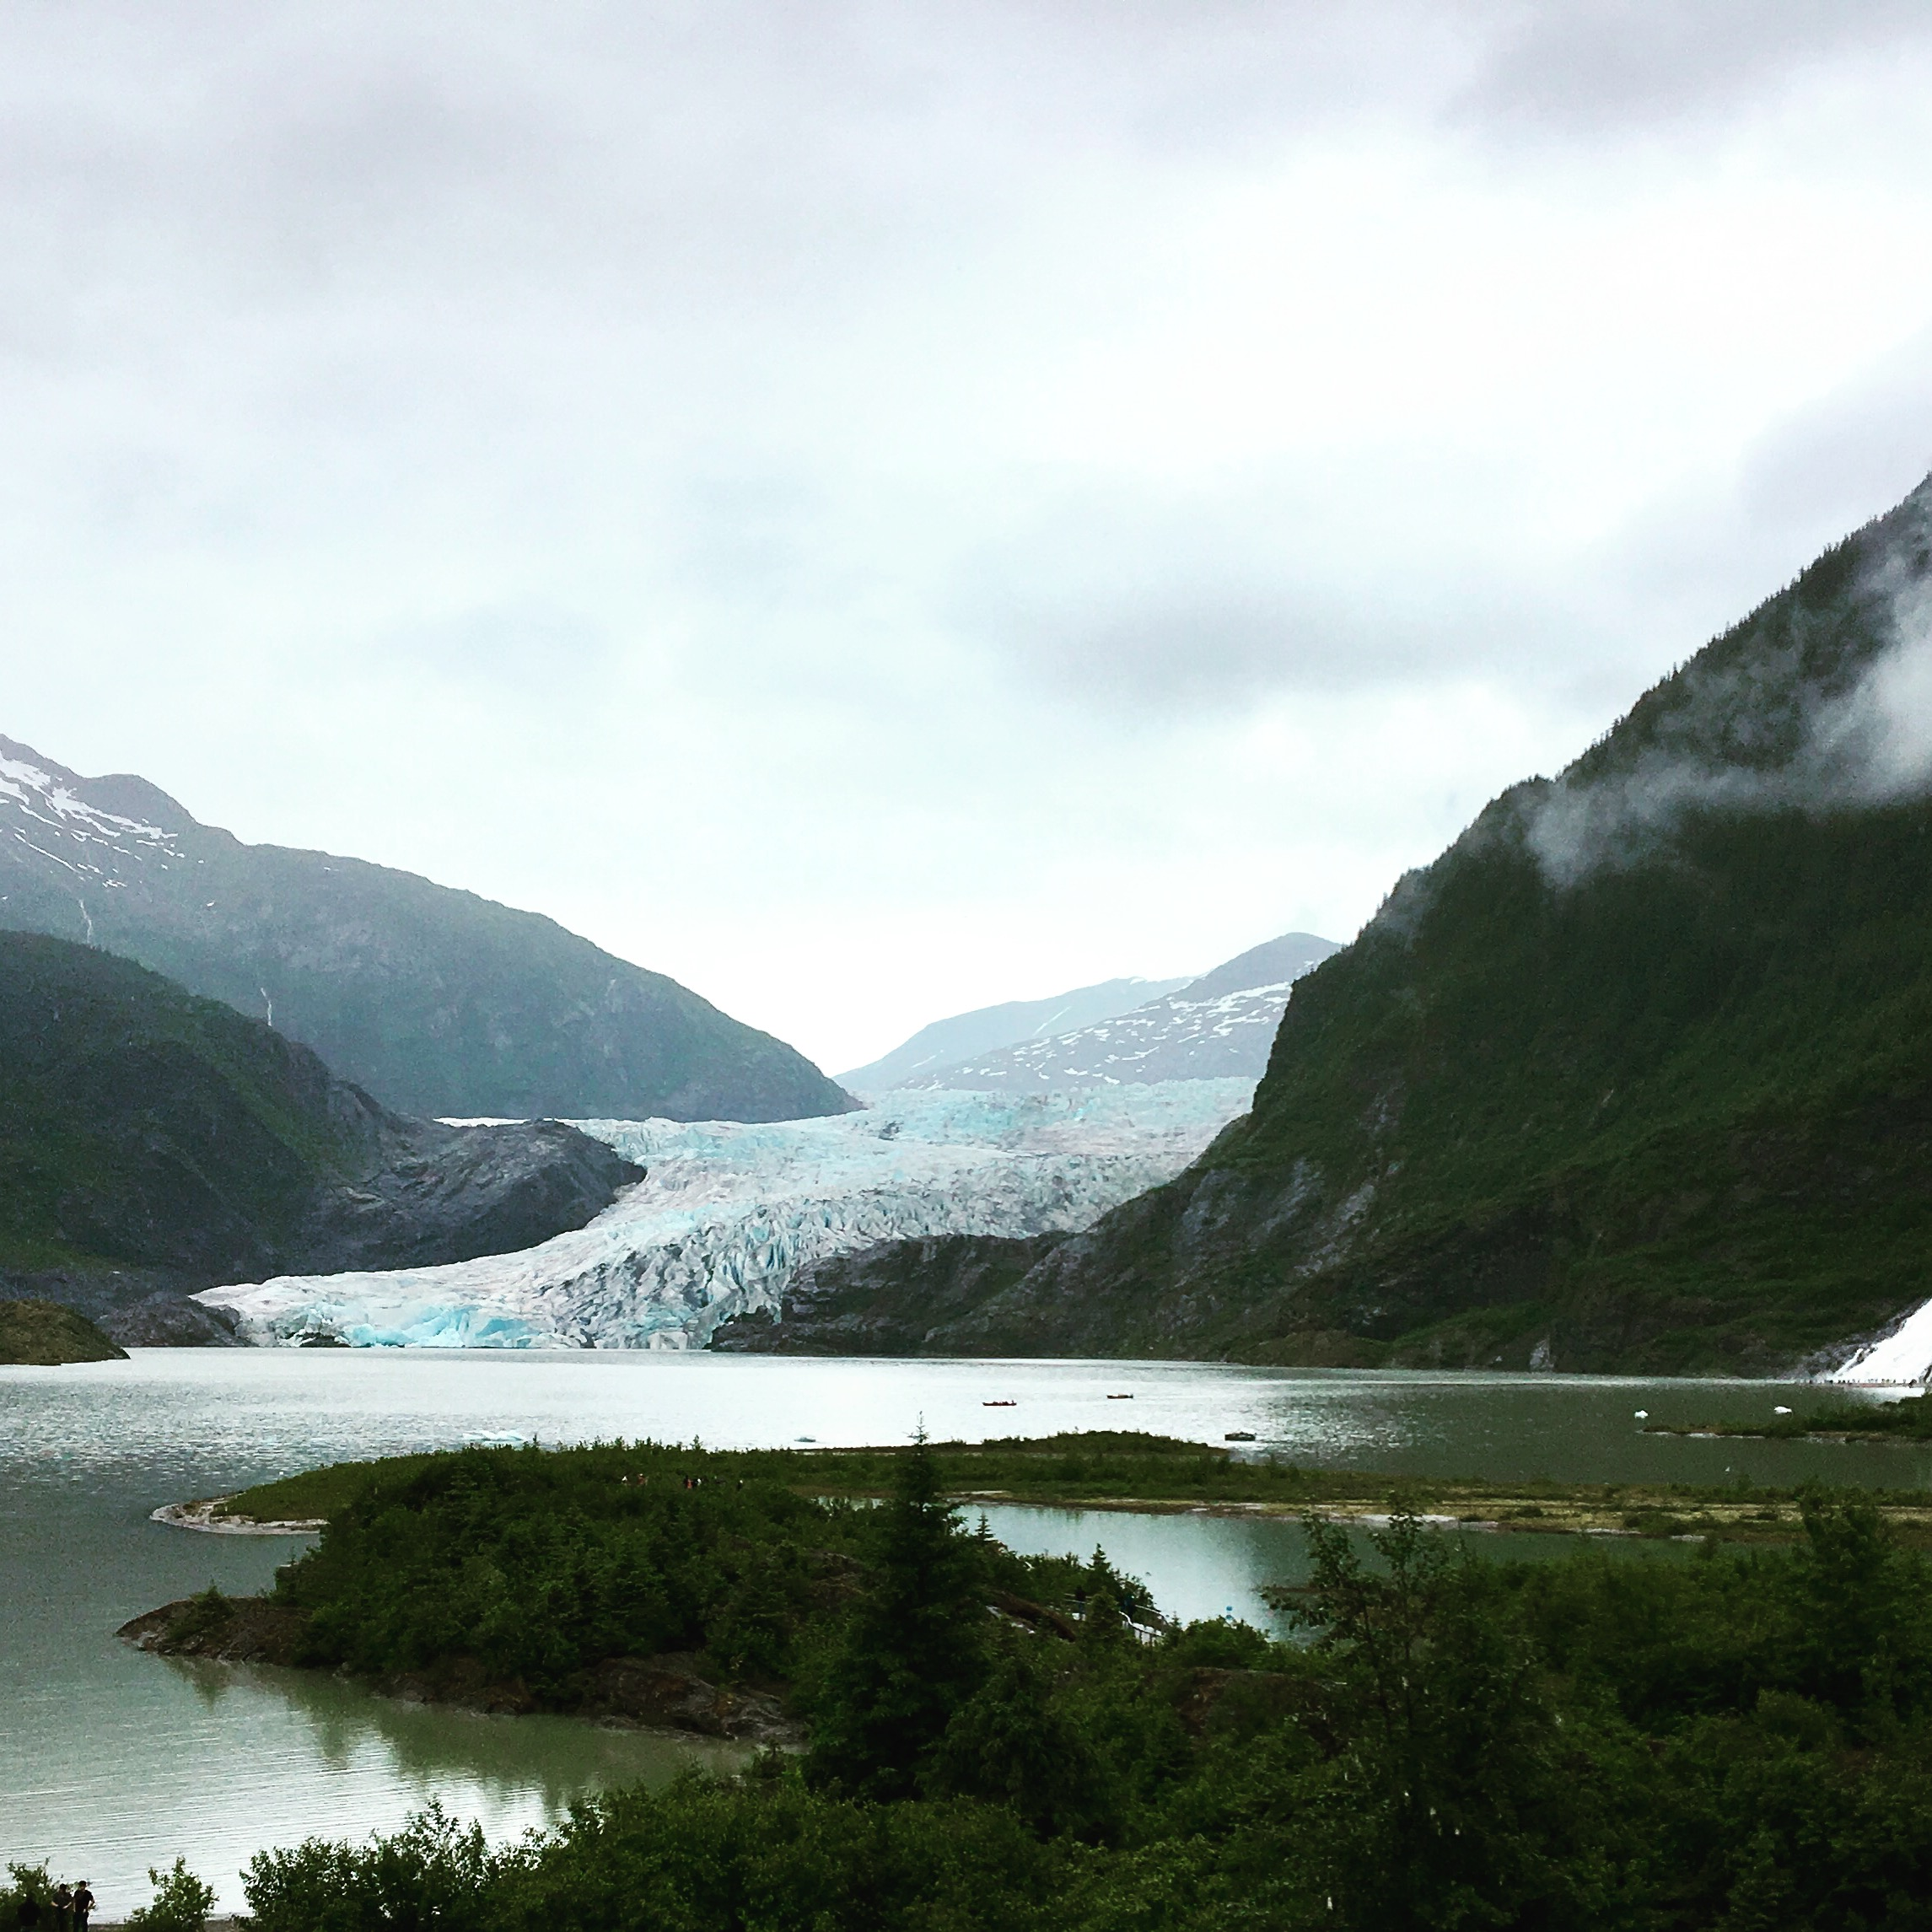 Blogging While Traveling in Alaska: Comedic Missteps and Lessons Learned by Rita E. Gould